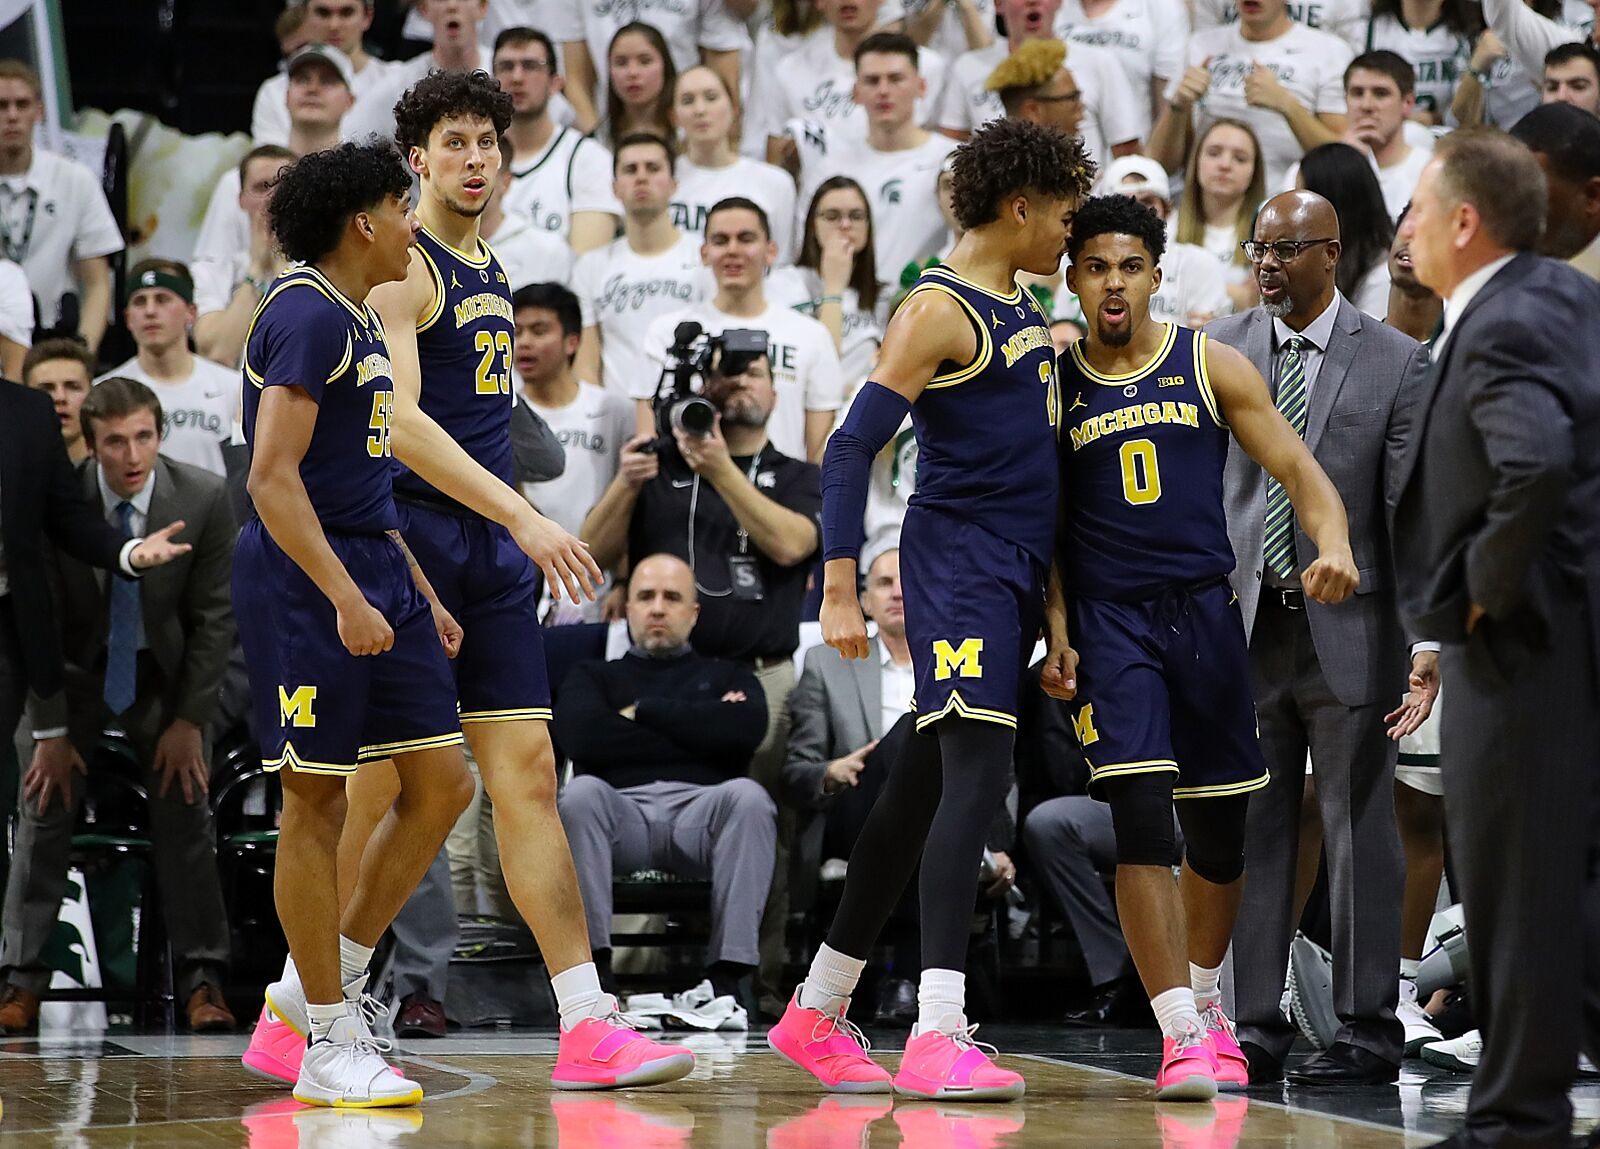 78d3982ccbe EAST LANSING, MI – MARCH 09: David DeJulius #0 of the Michigan Wolverines  celebrates with Jordan Poole #2 after making a layup during the first half  against ...